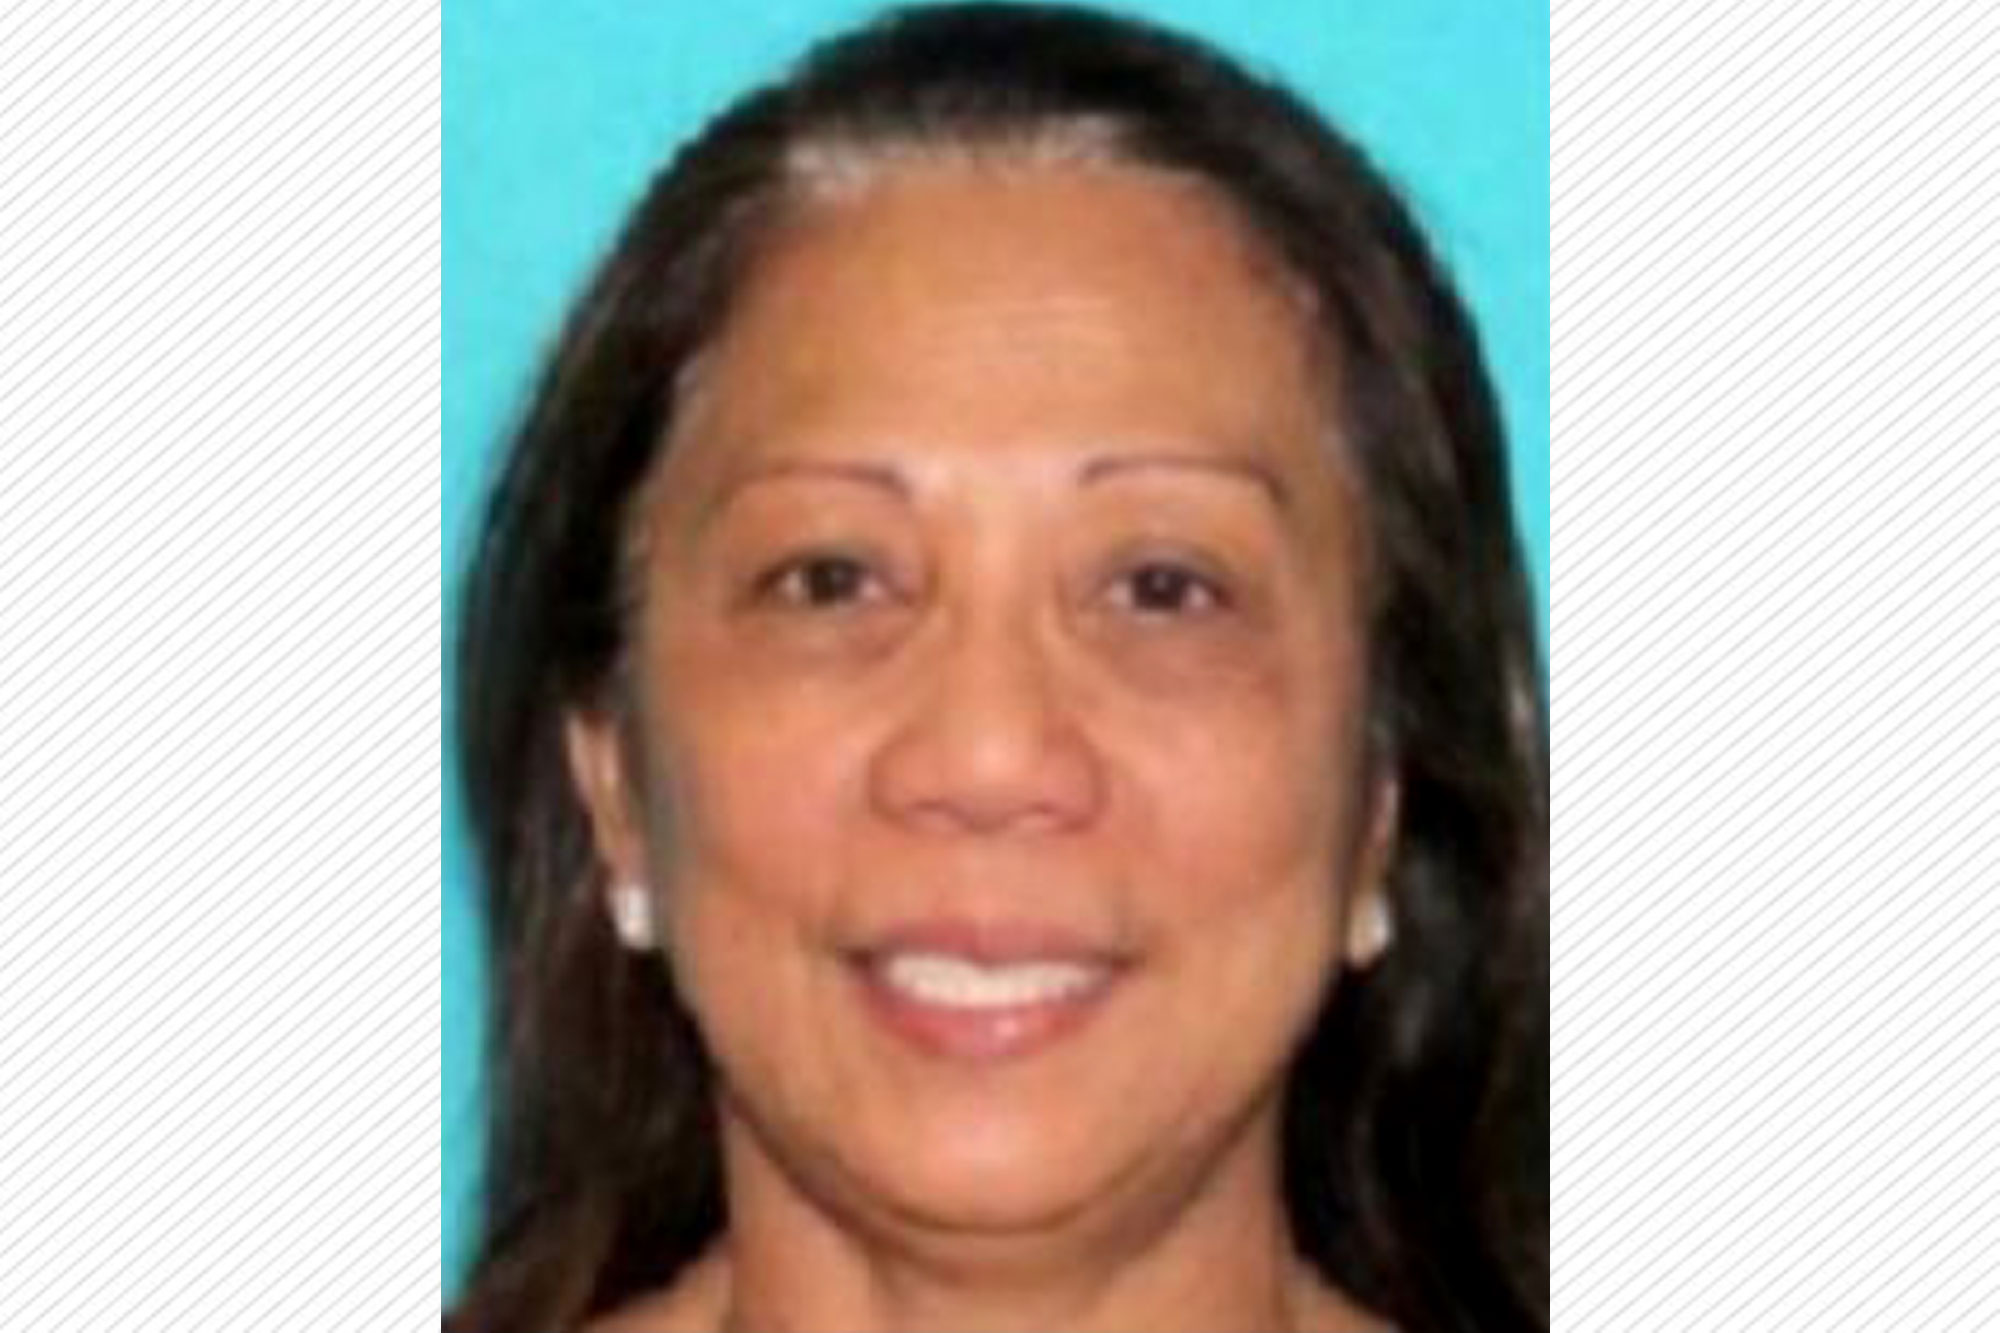 Police want to track down Marilou Danley